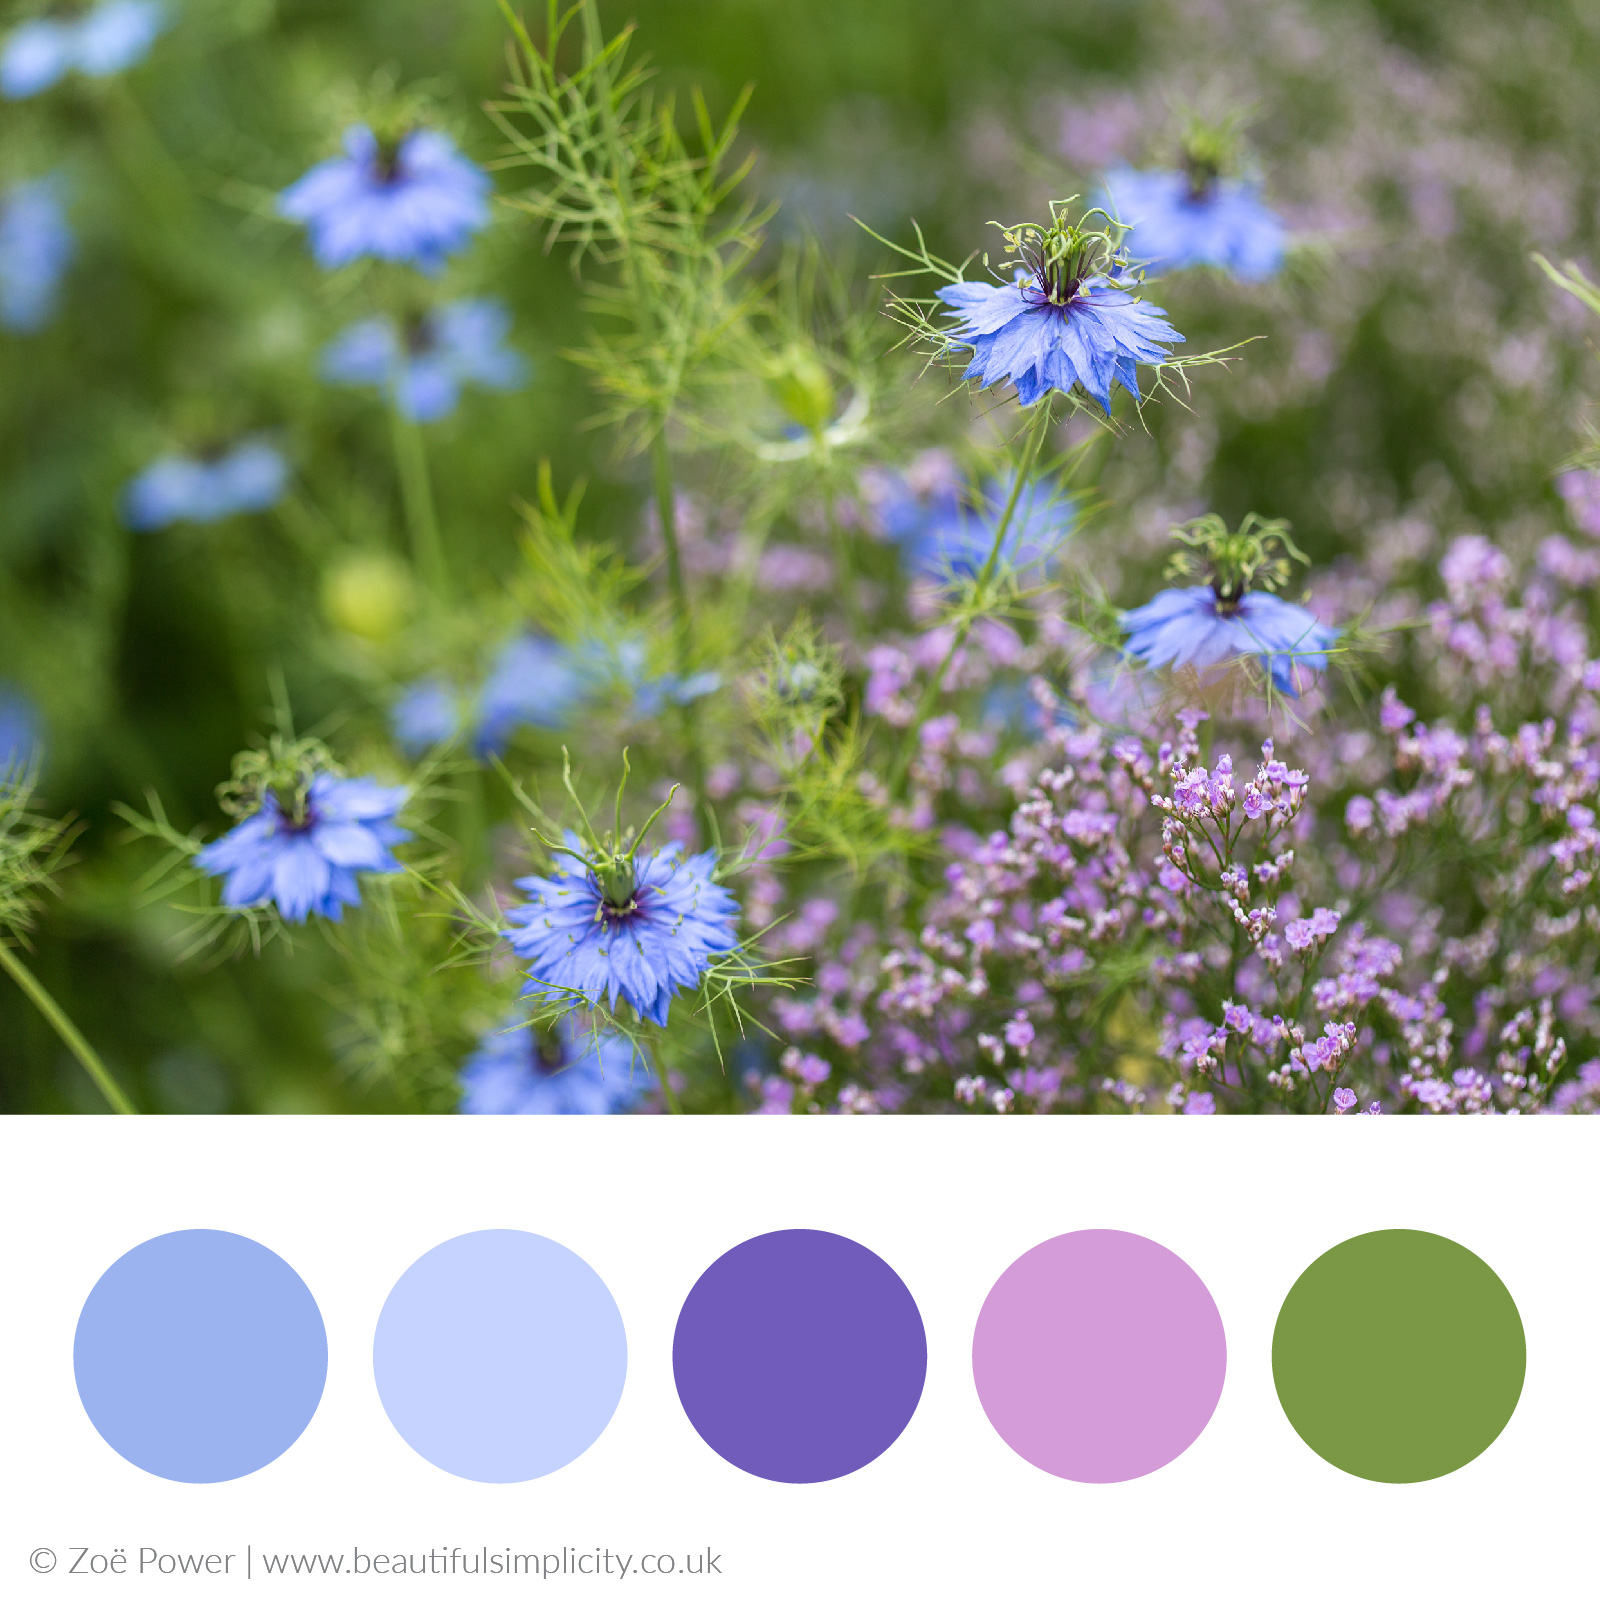 Cornflower blues and purples colour palette | West Dean Gardens, West Sussex, UK